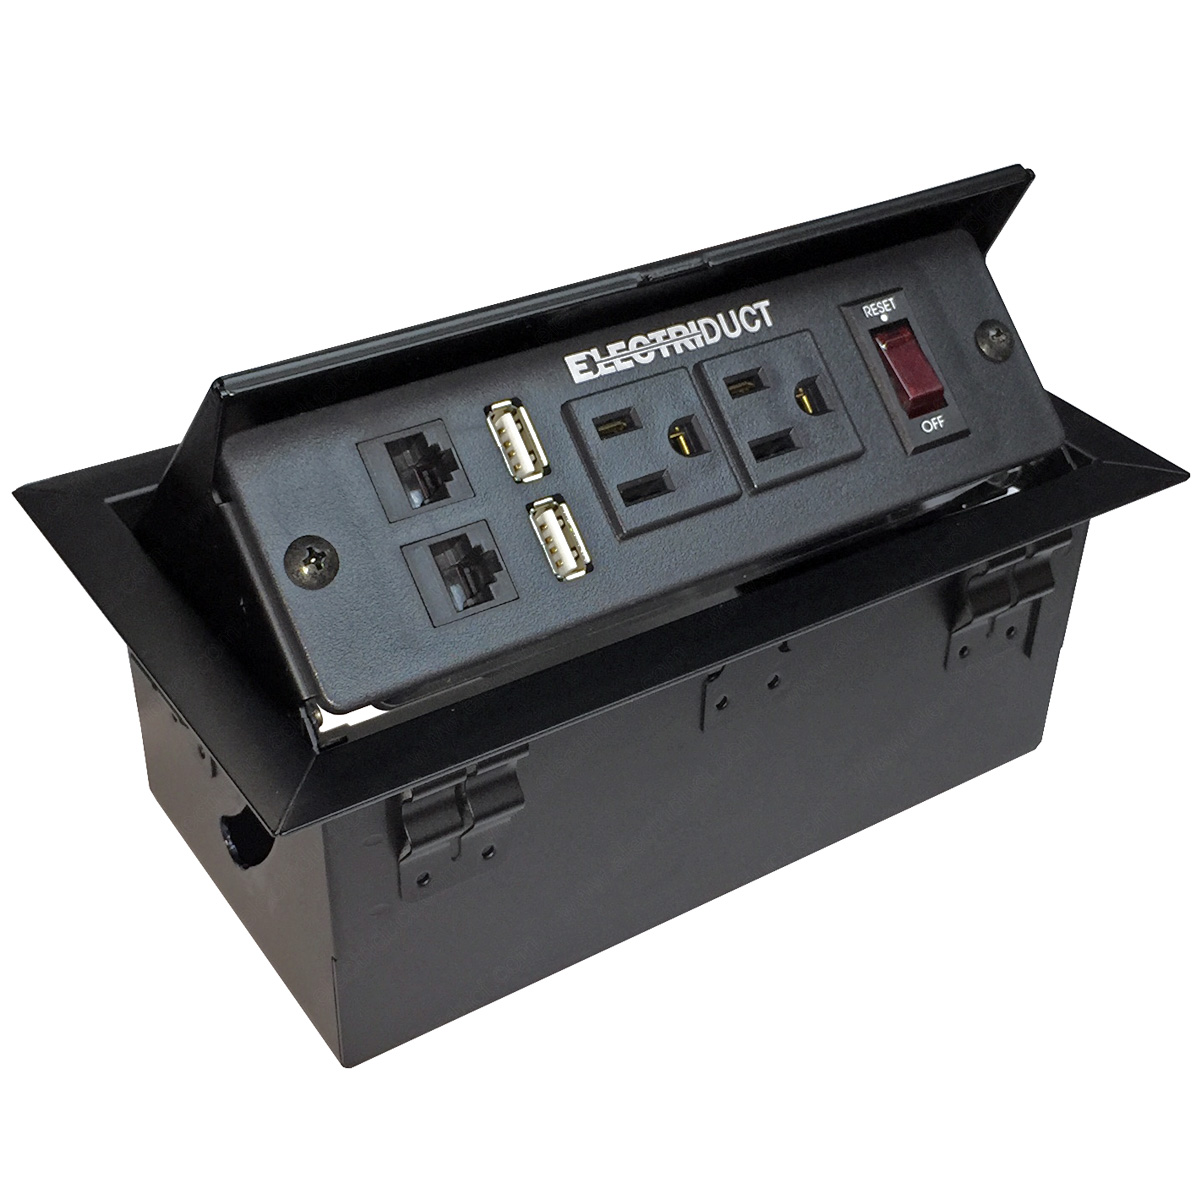 Metal PopUp Table Top Box Power Centers AC Outlets USB Ports RJ - Conference table power hub